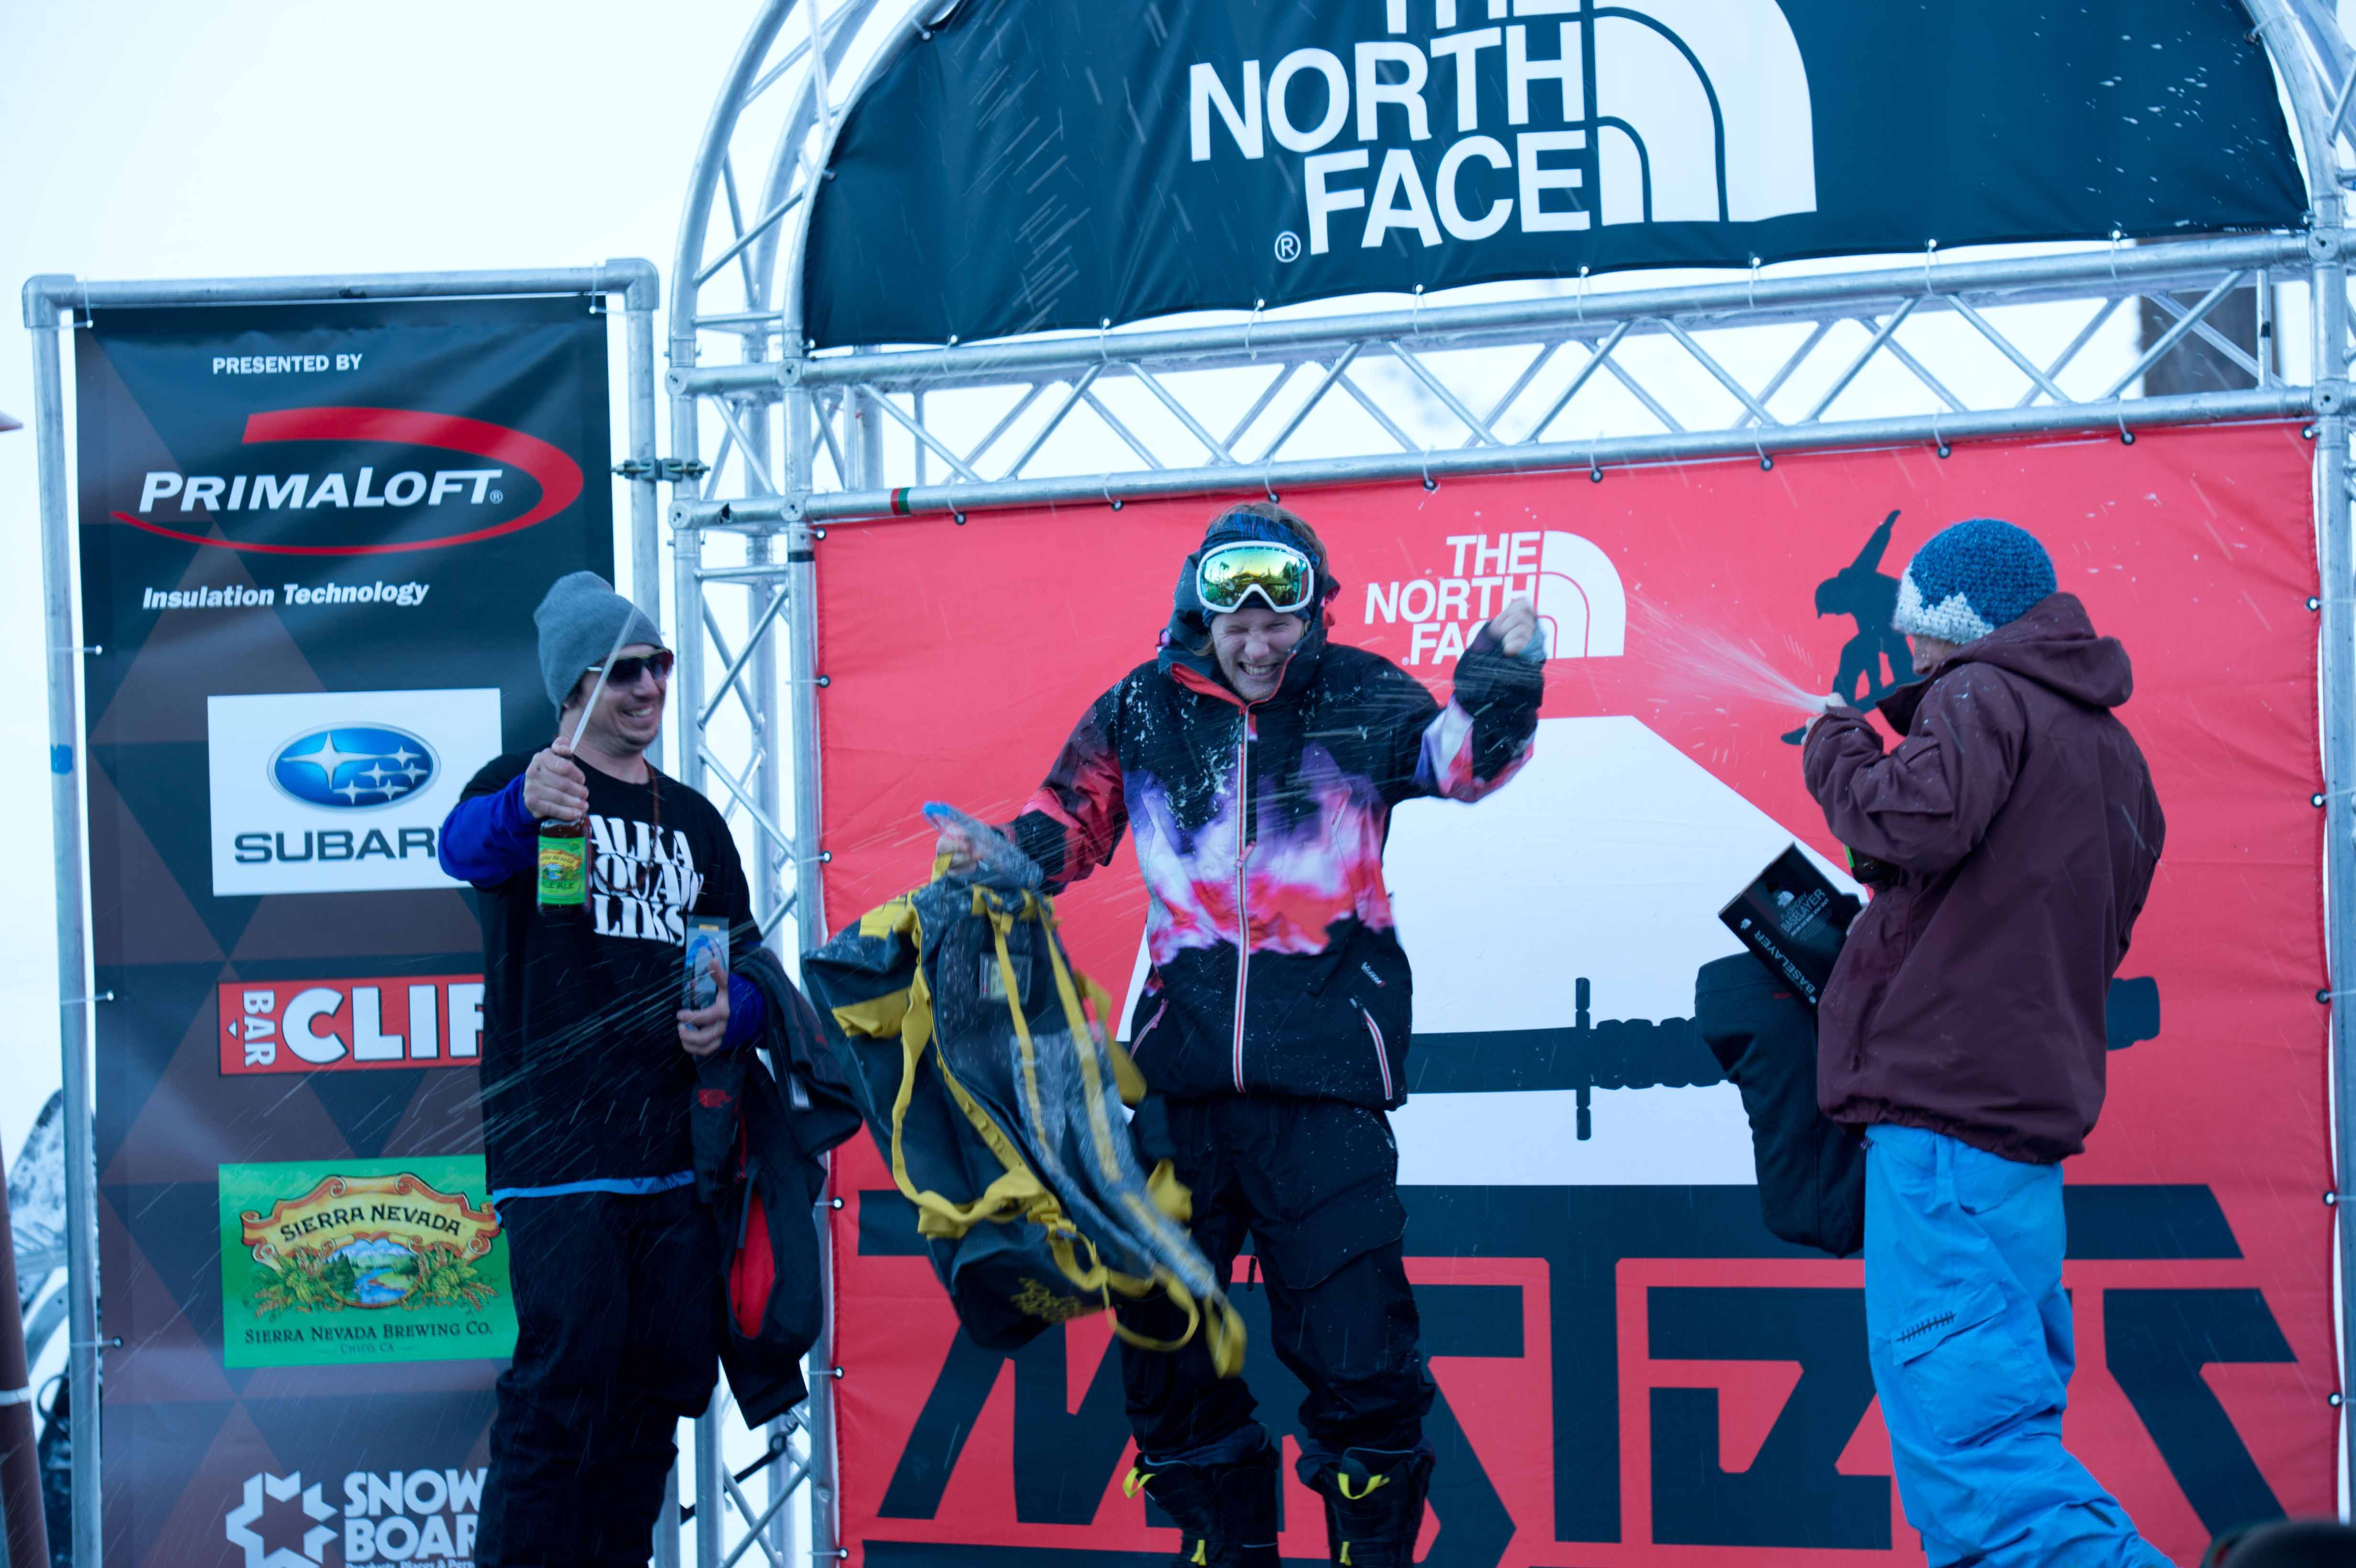 TNF Masters of snowboarding event at Alpine Meadows